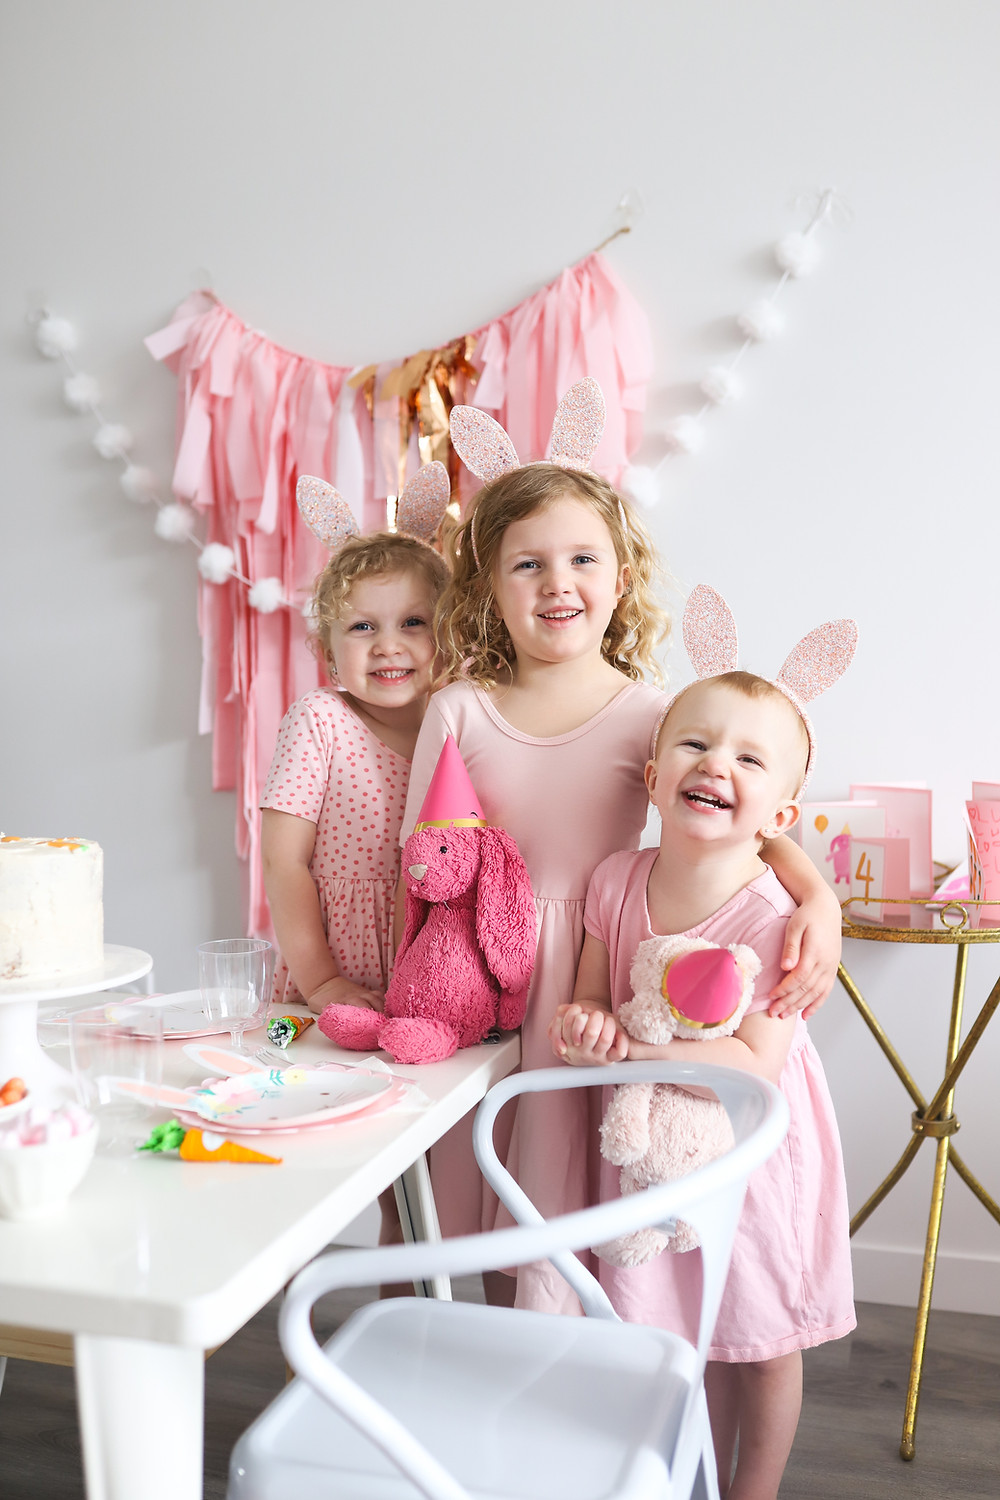 Three little girls smiling at the camera beside a white table decorated for a birthday party.